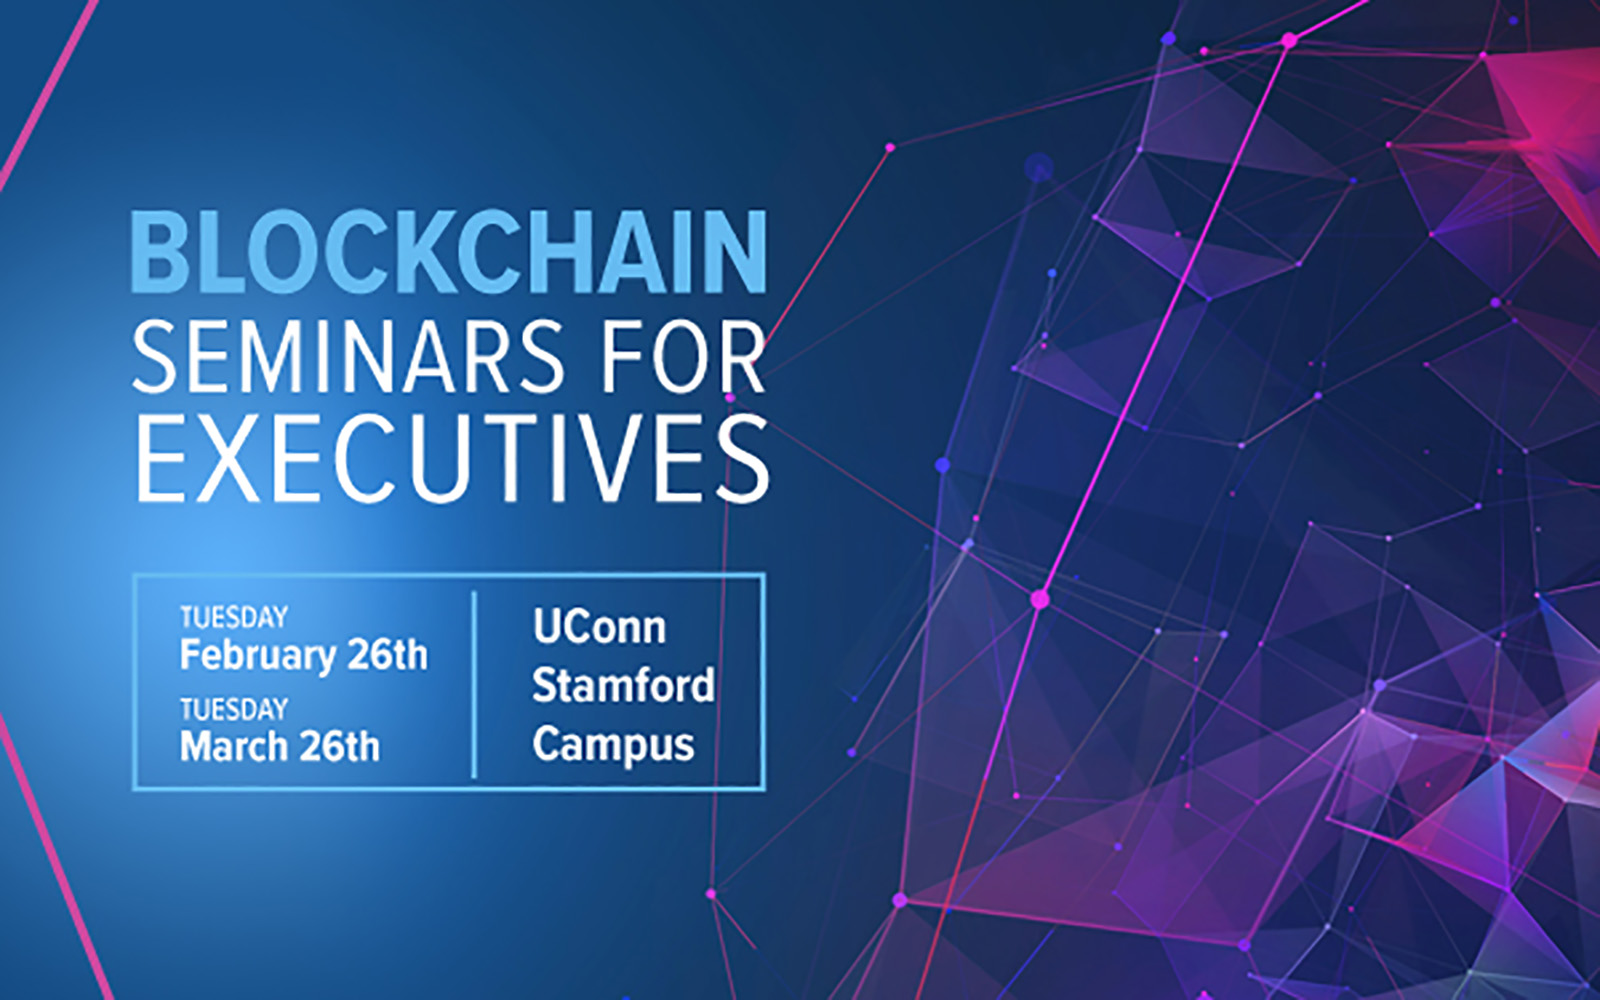 Blockchain Seminars for Executives: Tuesday February 26, Tuesday March 26, UConn Stamford Campus